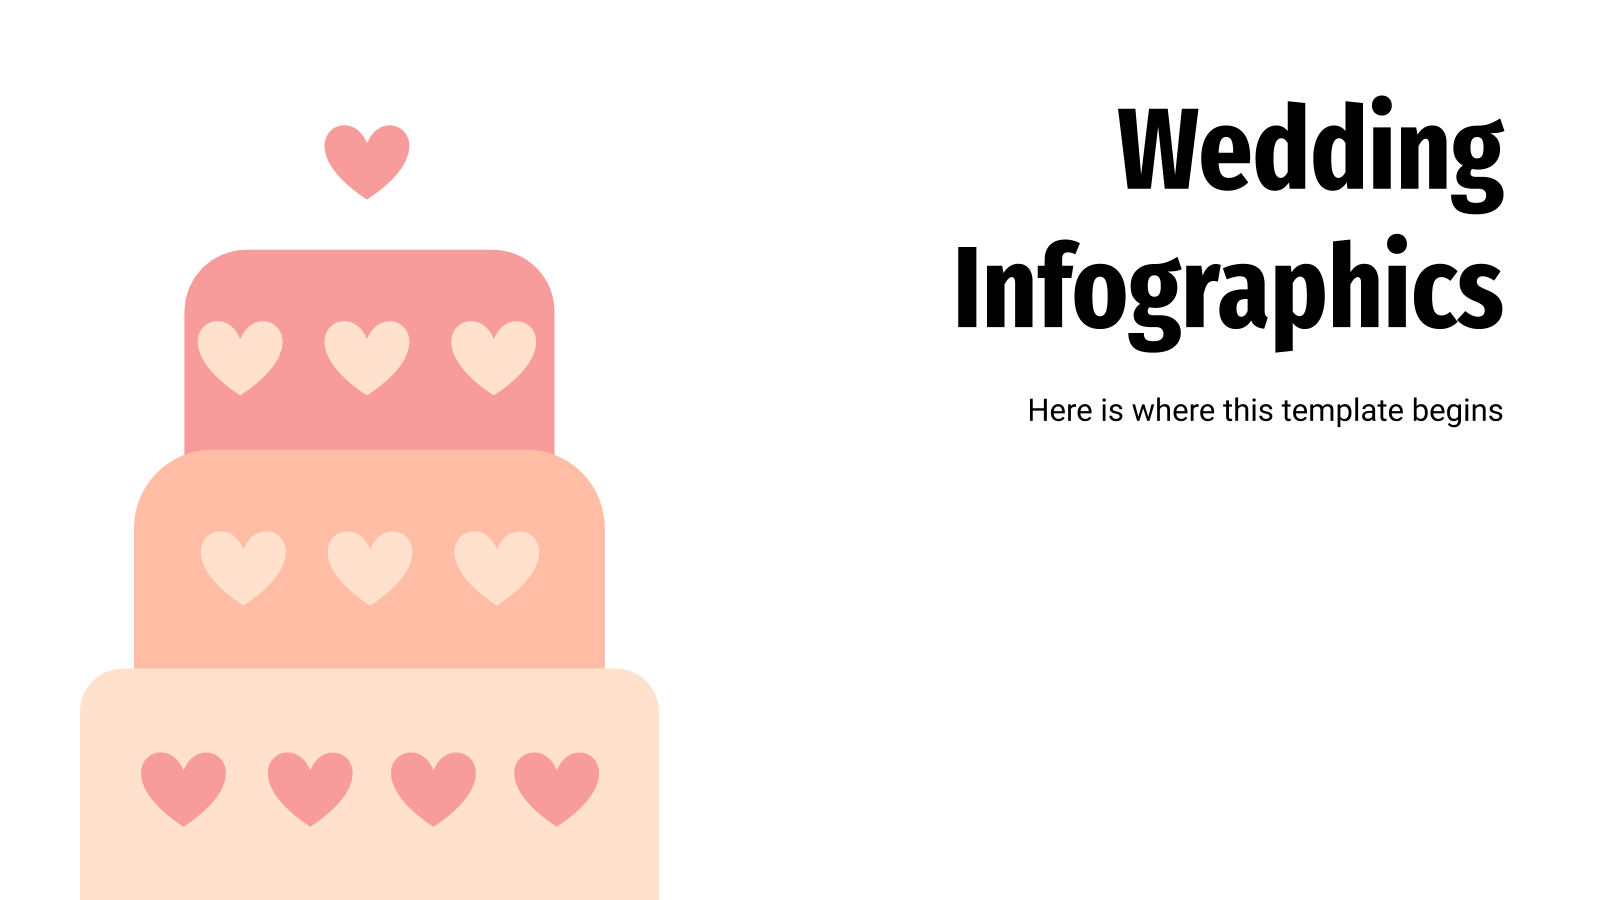 Wedding Infographics presentation template